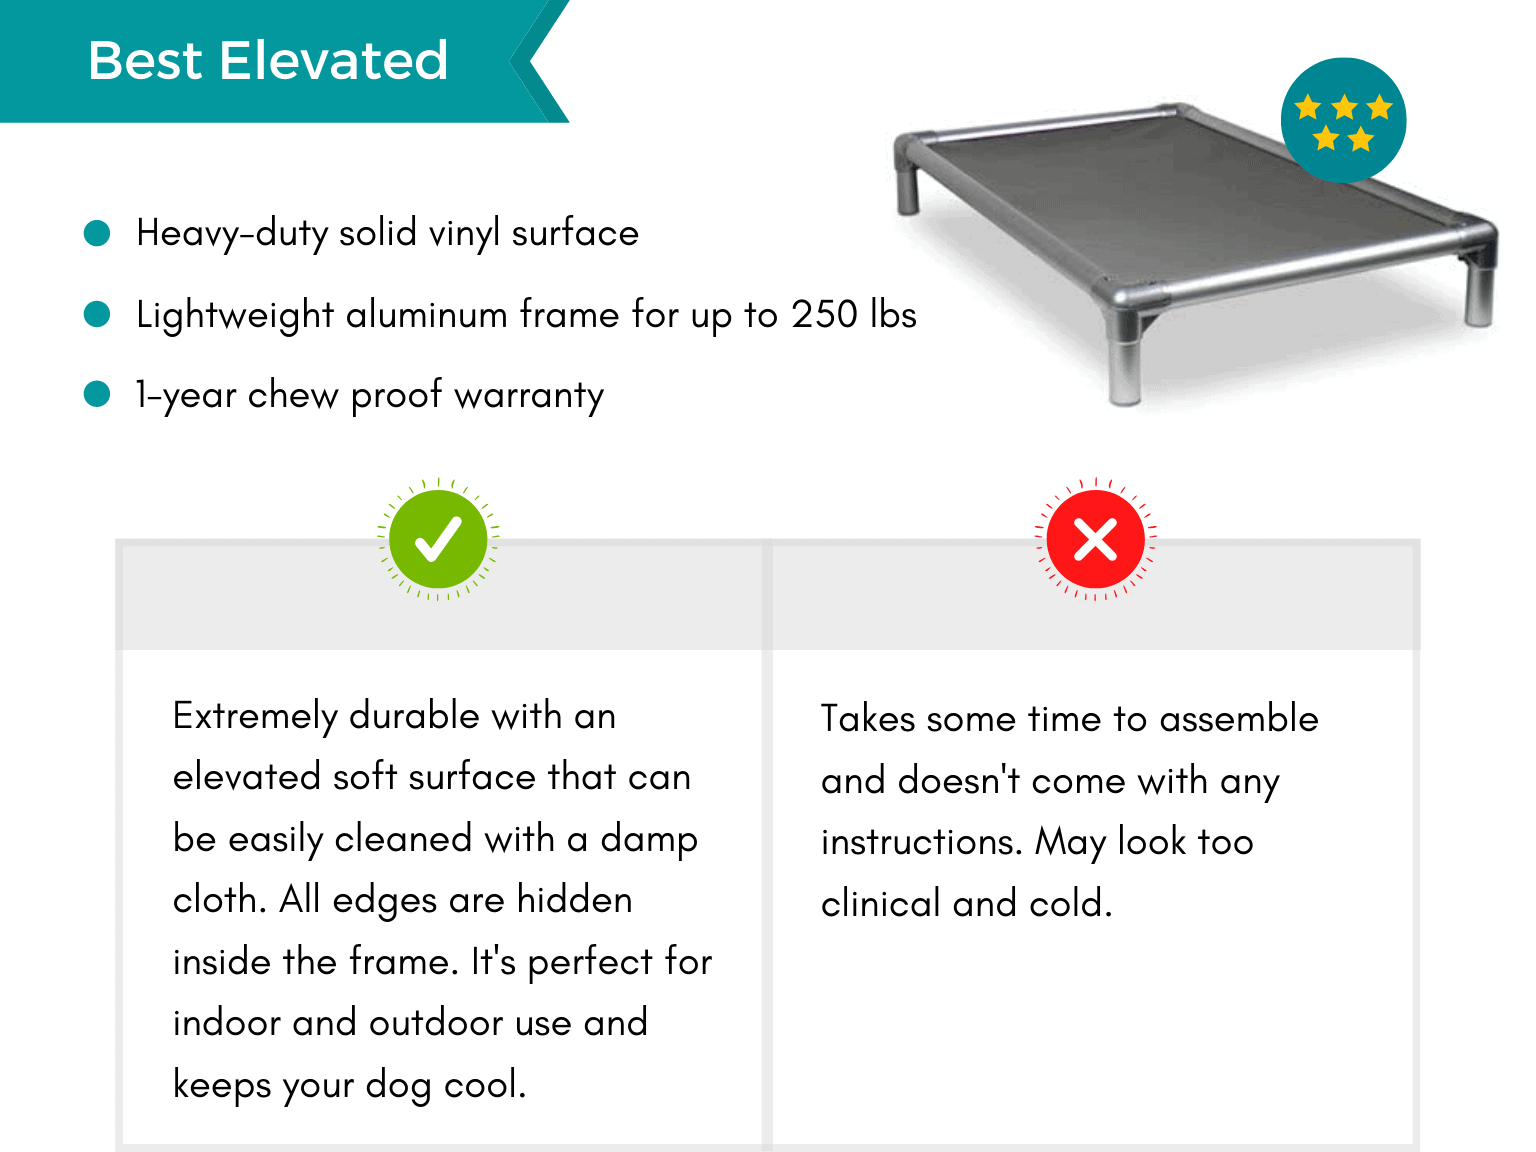 Product card: Best Elevated Chew Proof Dog Bed, Pros and Cons